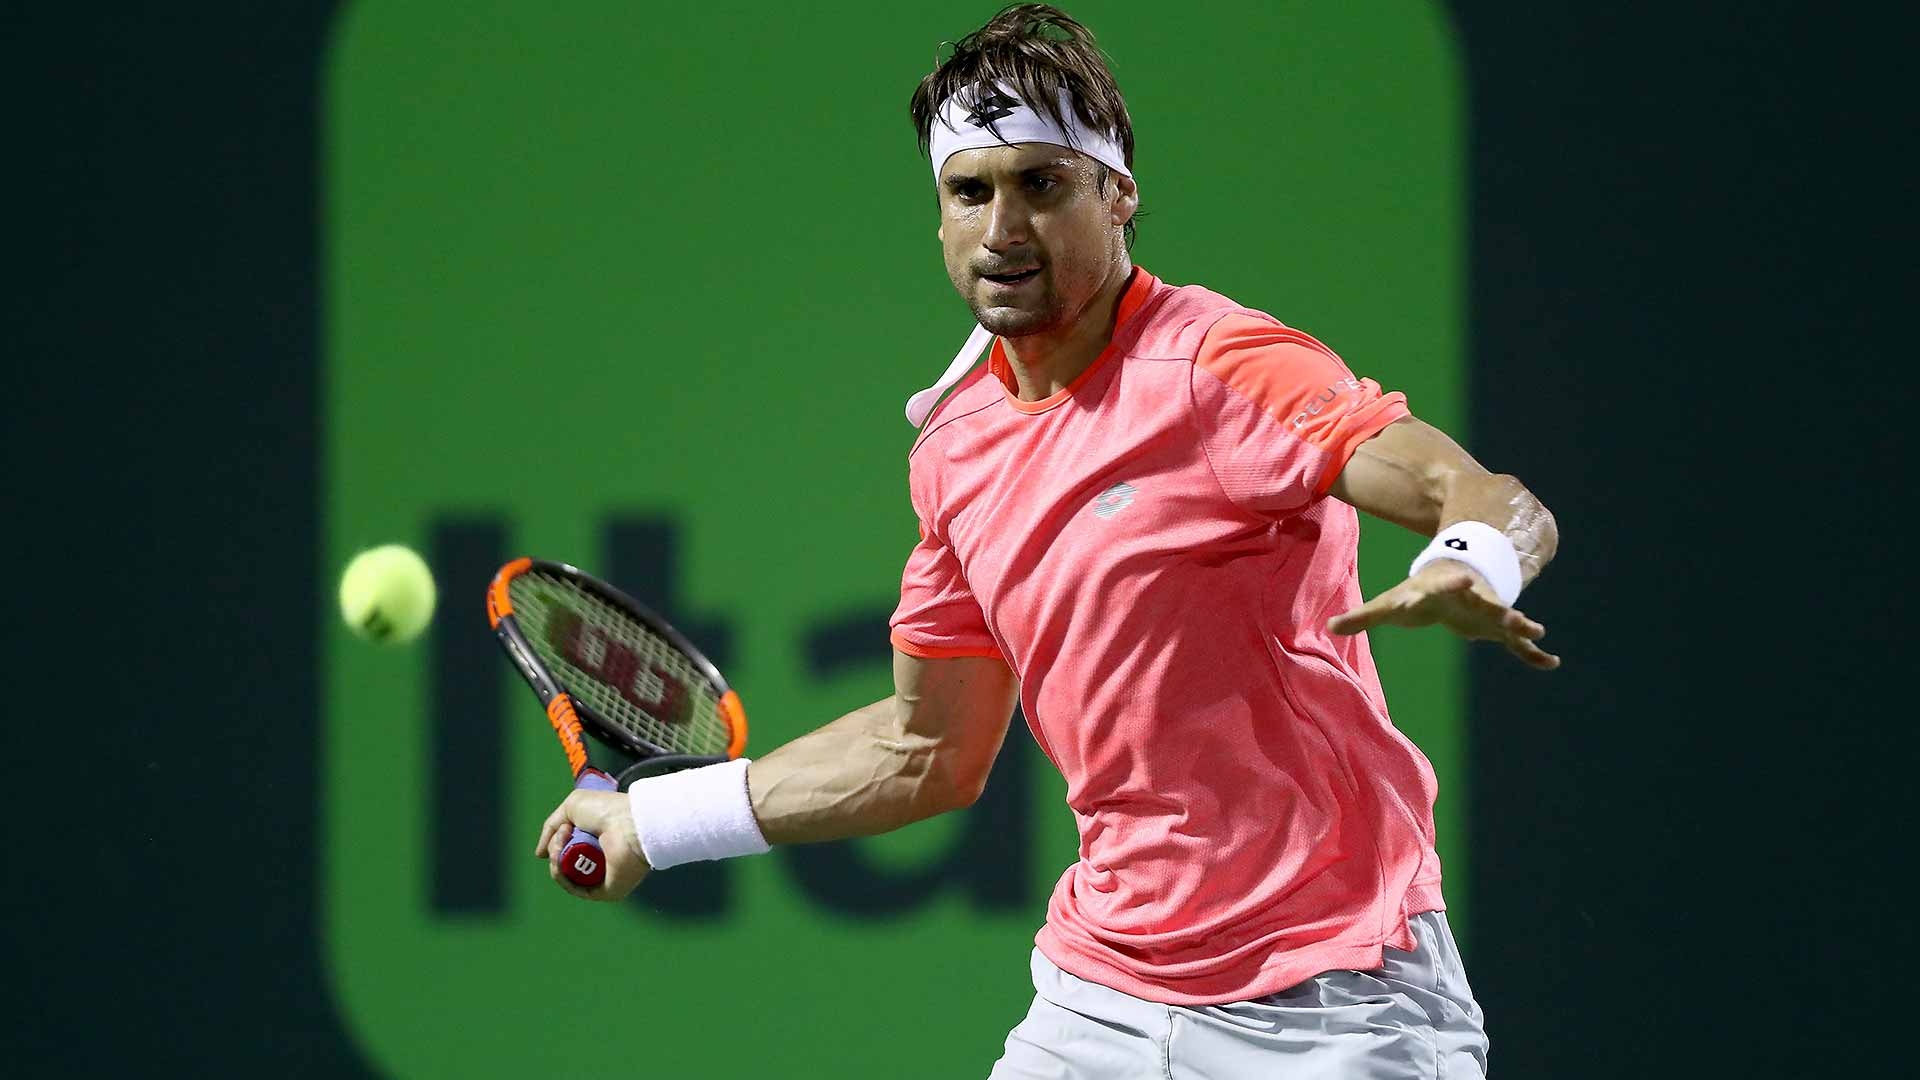 David Ferrer will make his final appearance at the Miami Open presented by Itau